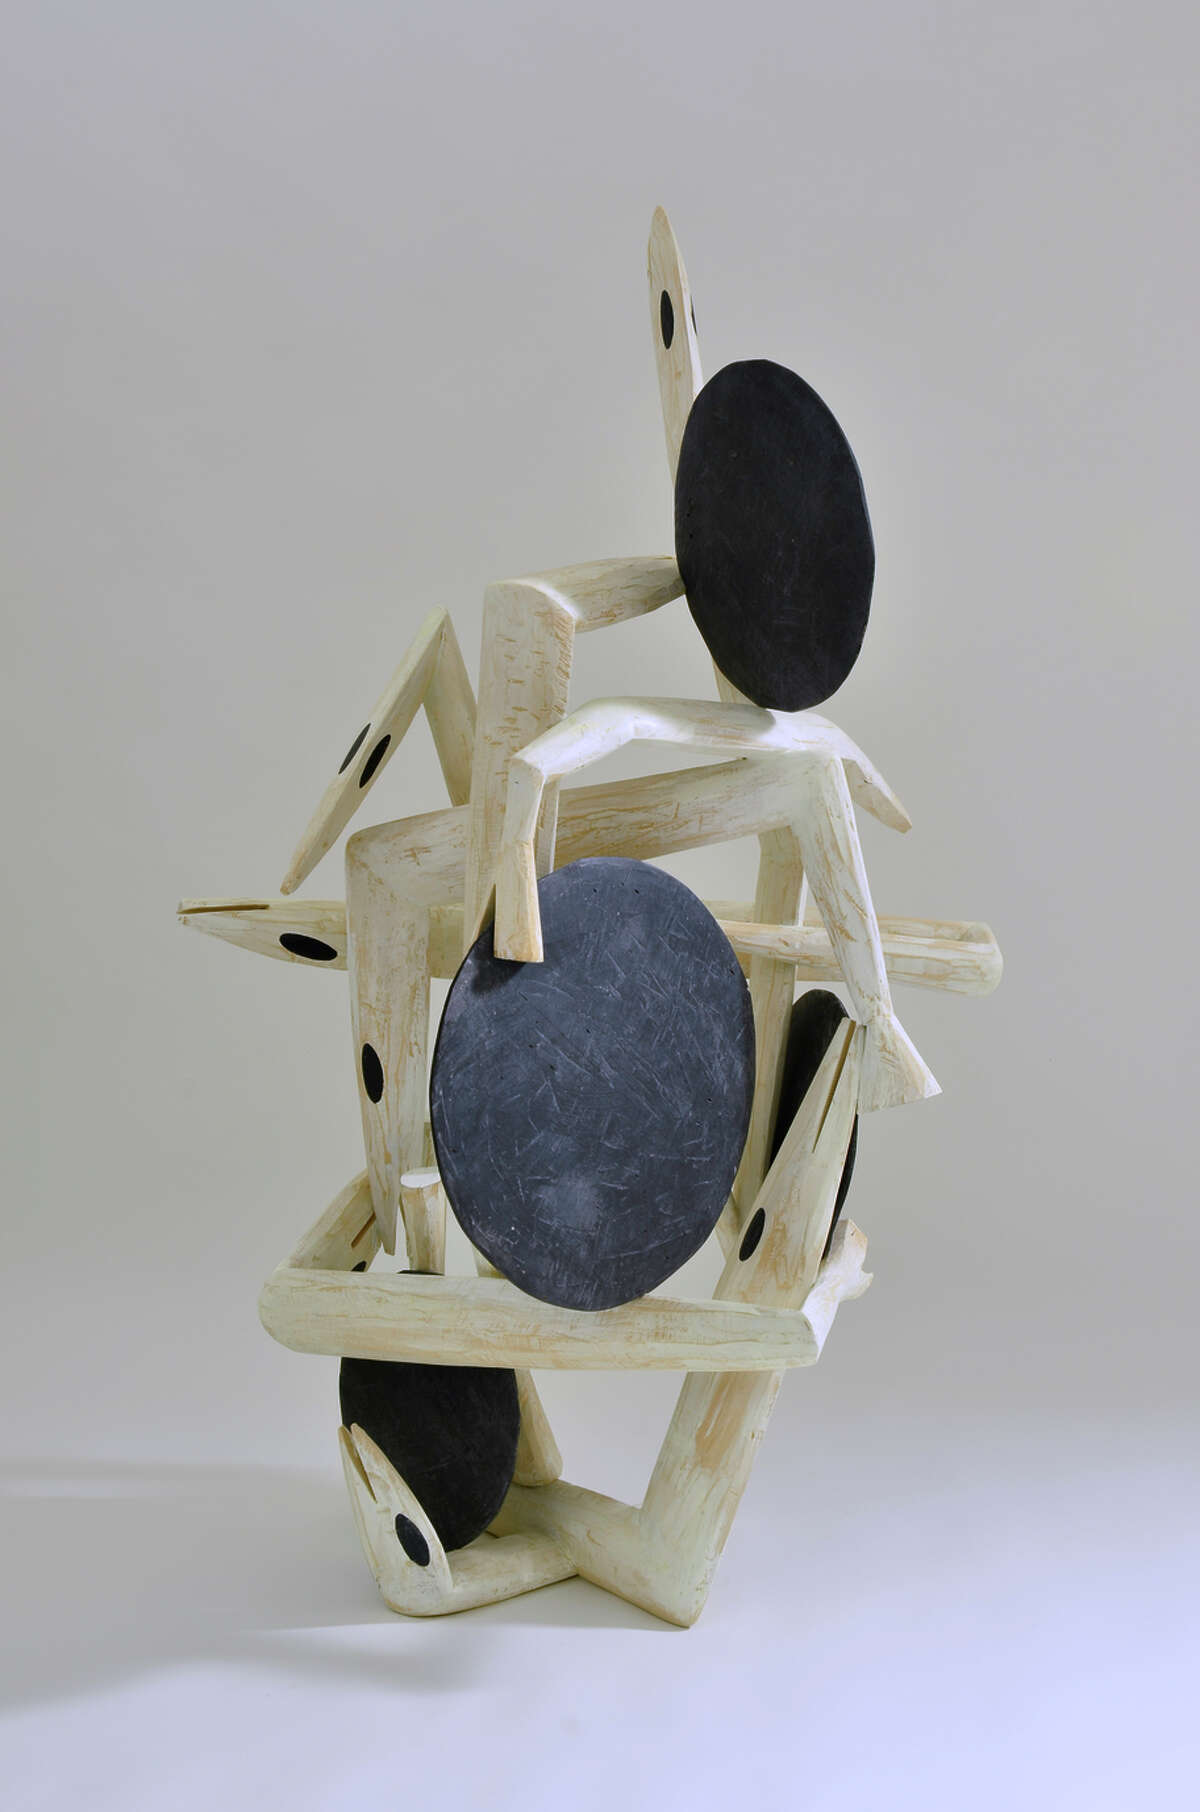 """""""Bode"""" (2015), wood and paint by Robert Brady, is on display at Jack Fischer Gallery."""